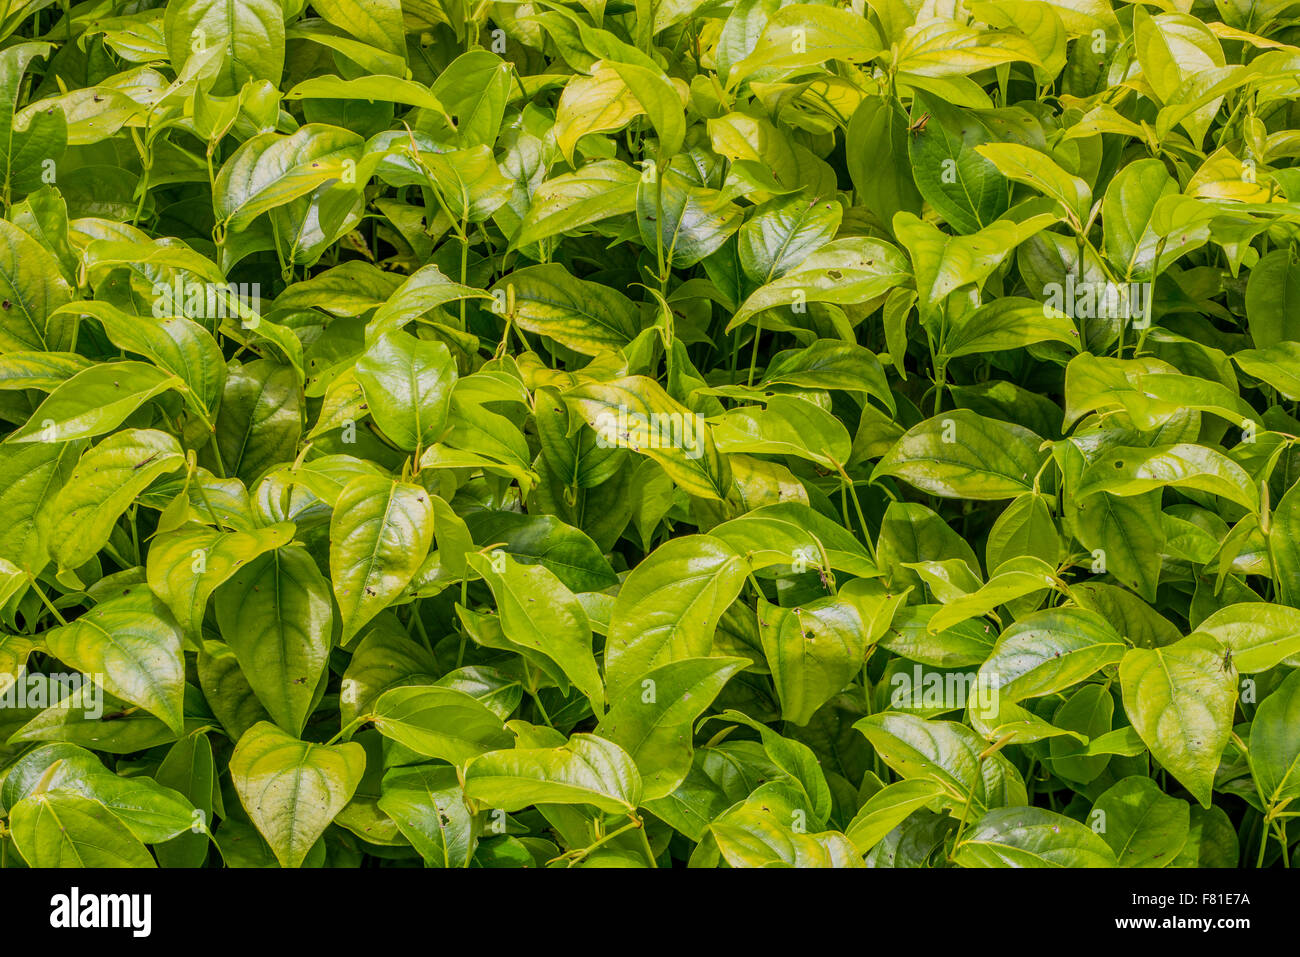 Piper Plant - Piper callosum - medicinal plant, used as both a mild stimulant and as a relaxant, and as an appetite - Stock Image